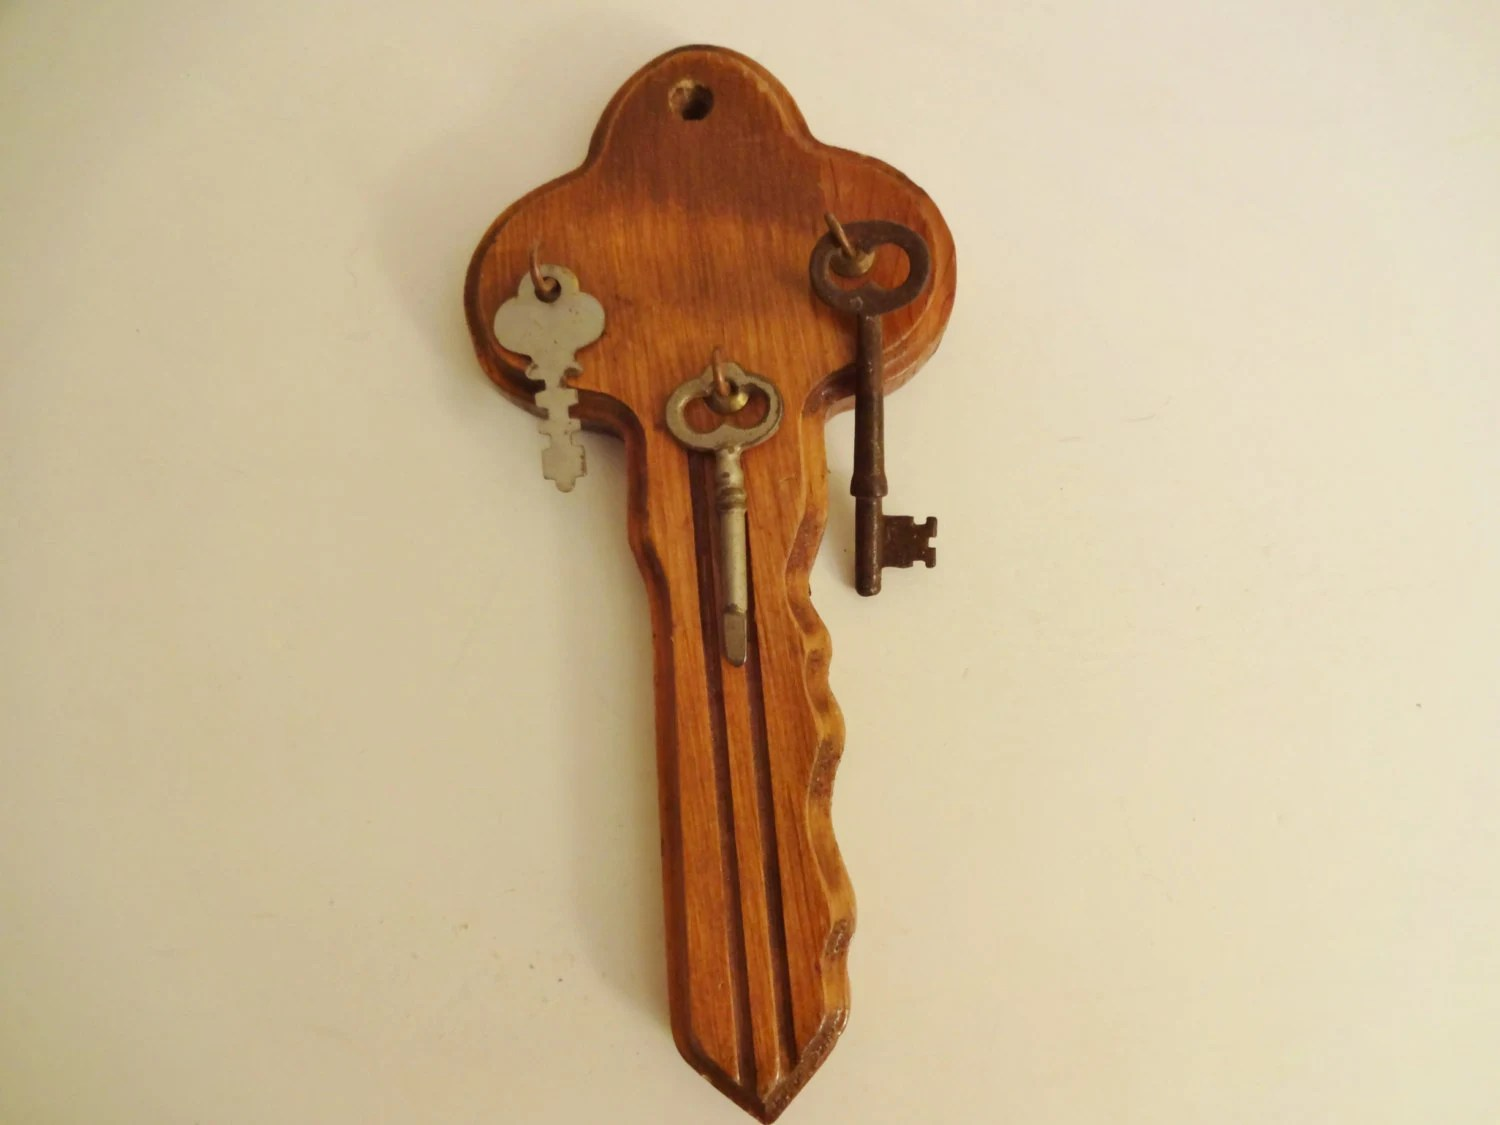 Key Shaped Key Rack Vintage Wooden Key Shaped Key Holder Wall Mounted Key Rack